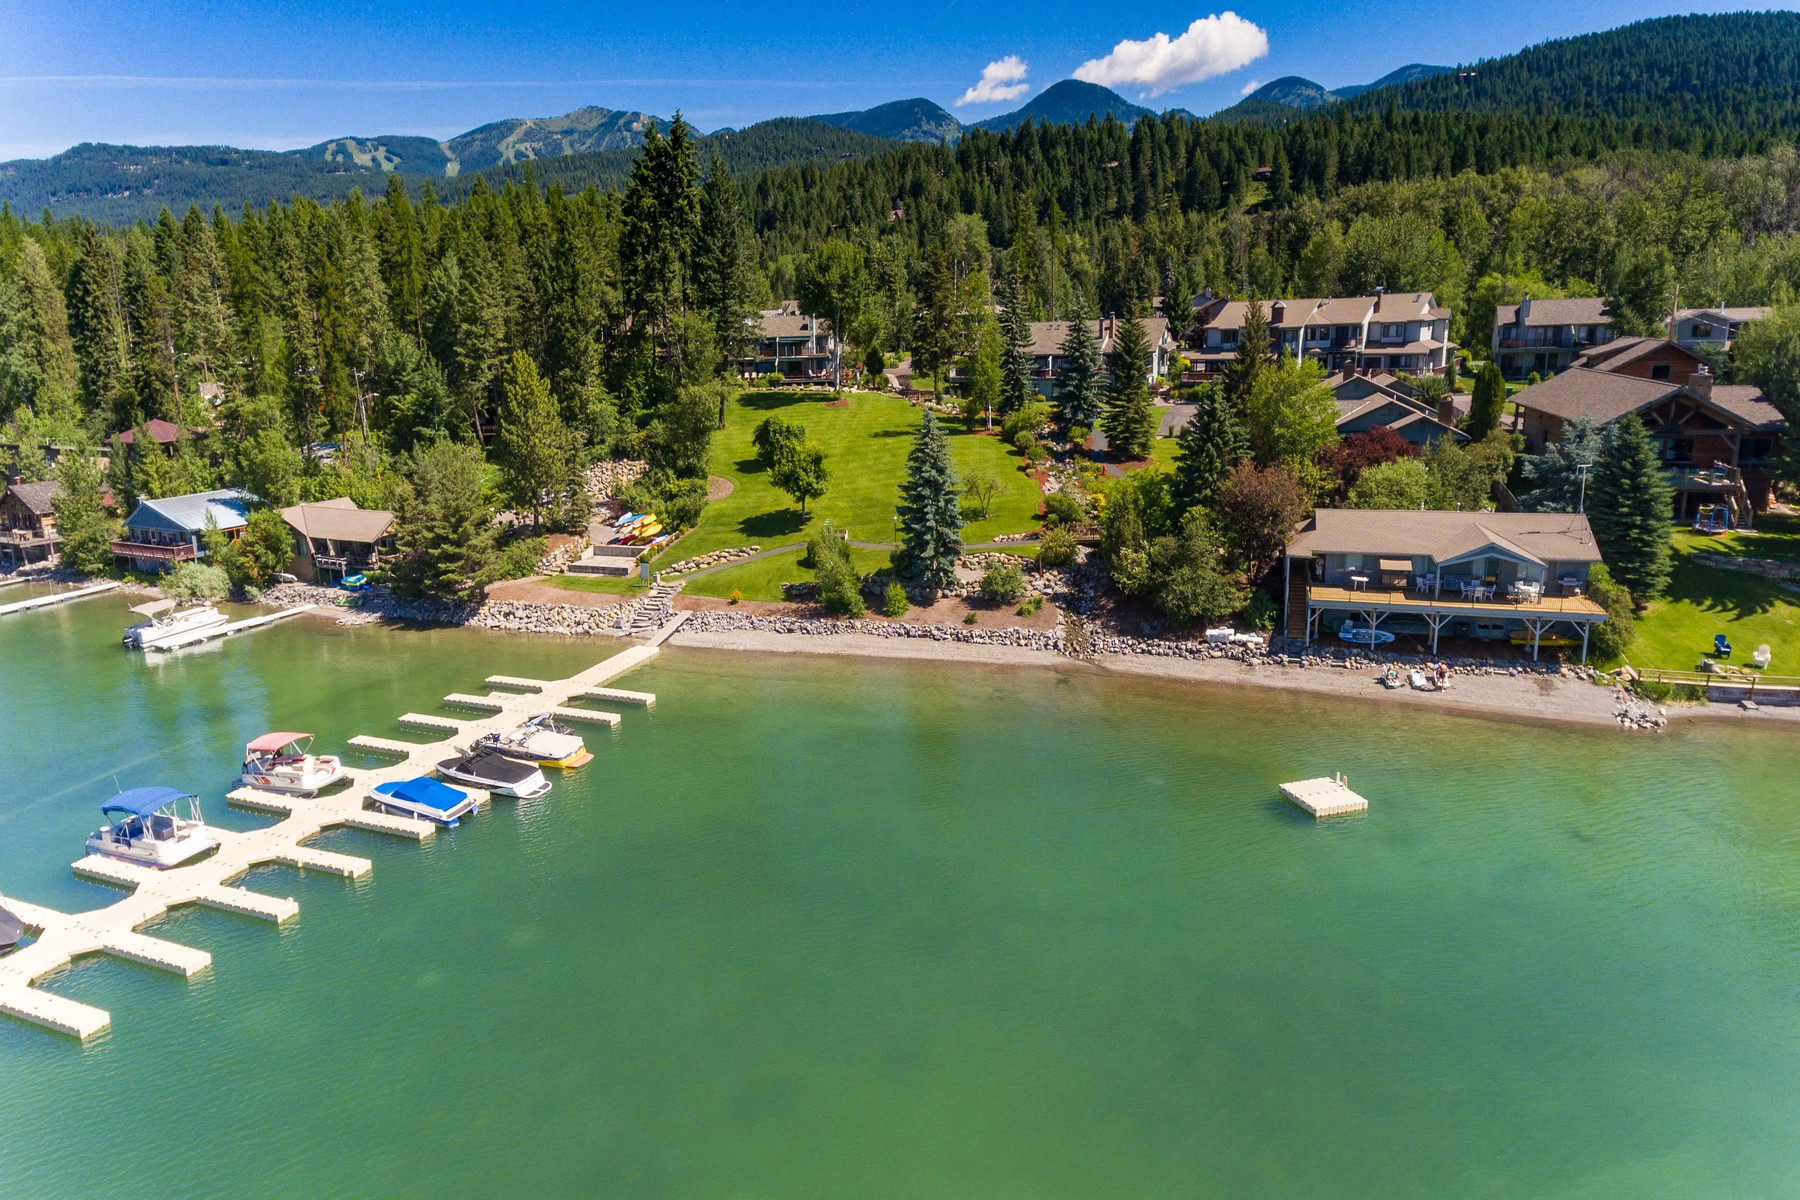 Additional photo for property listing at 1750 E Lakeshore Dr , Whitefish, MT 59937 1750 E Lakeshore Dr Whitefish, Montana 59937 United States